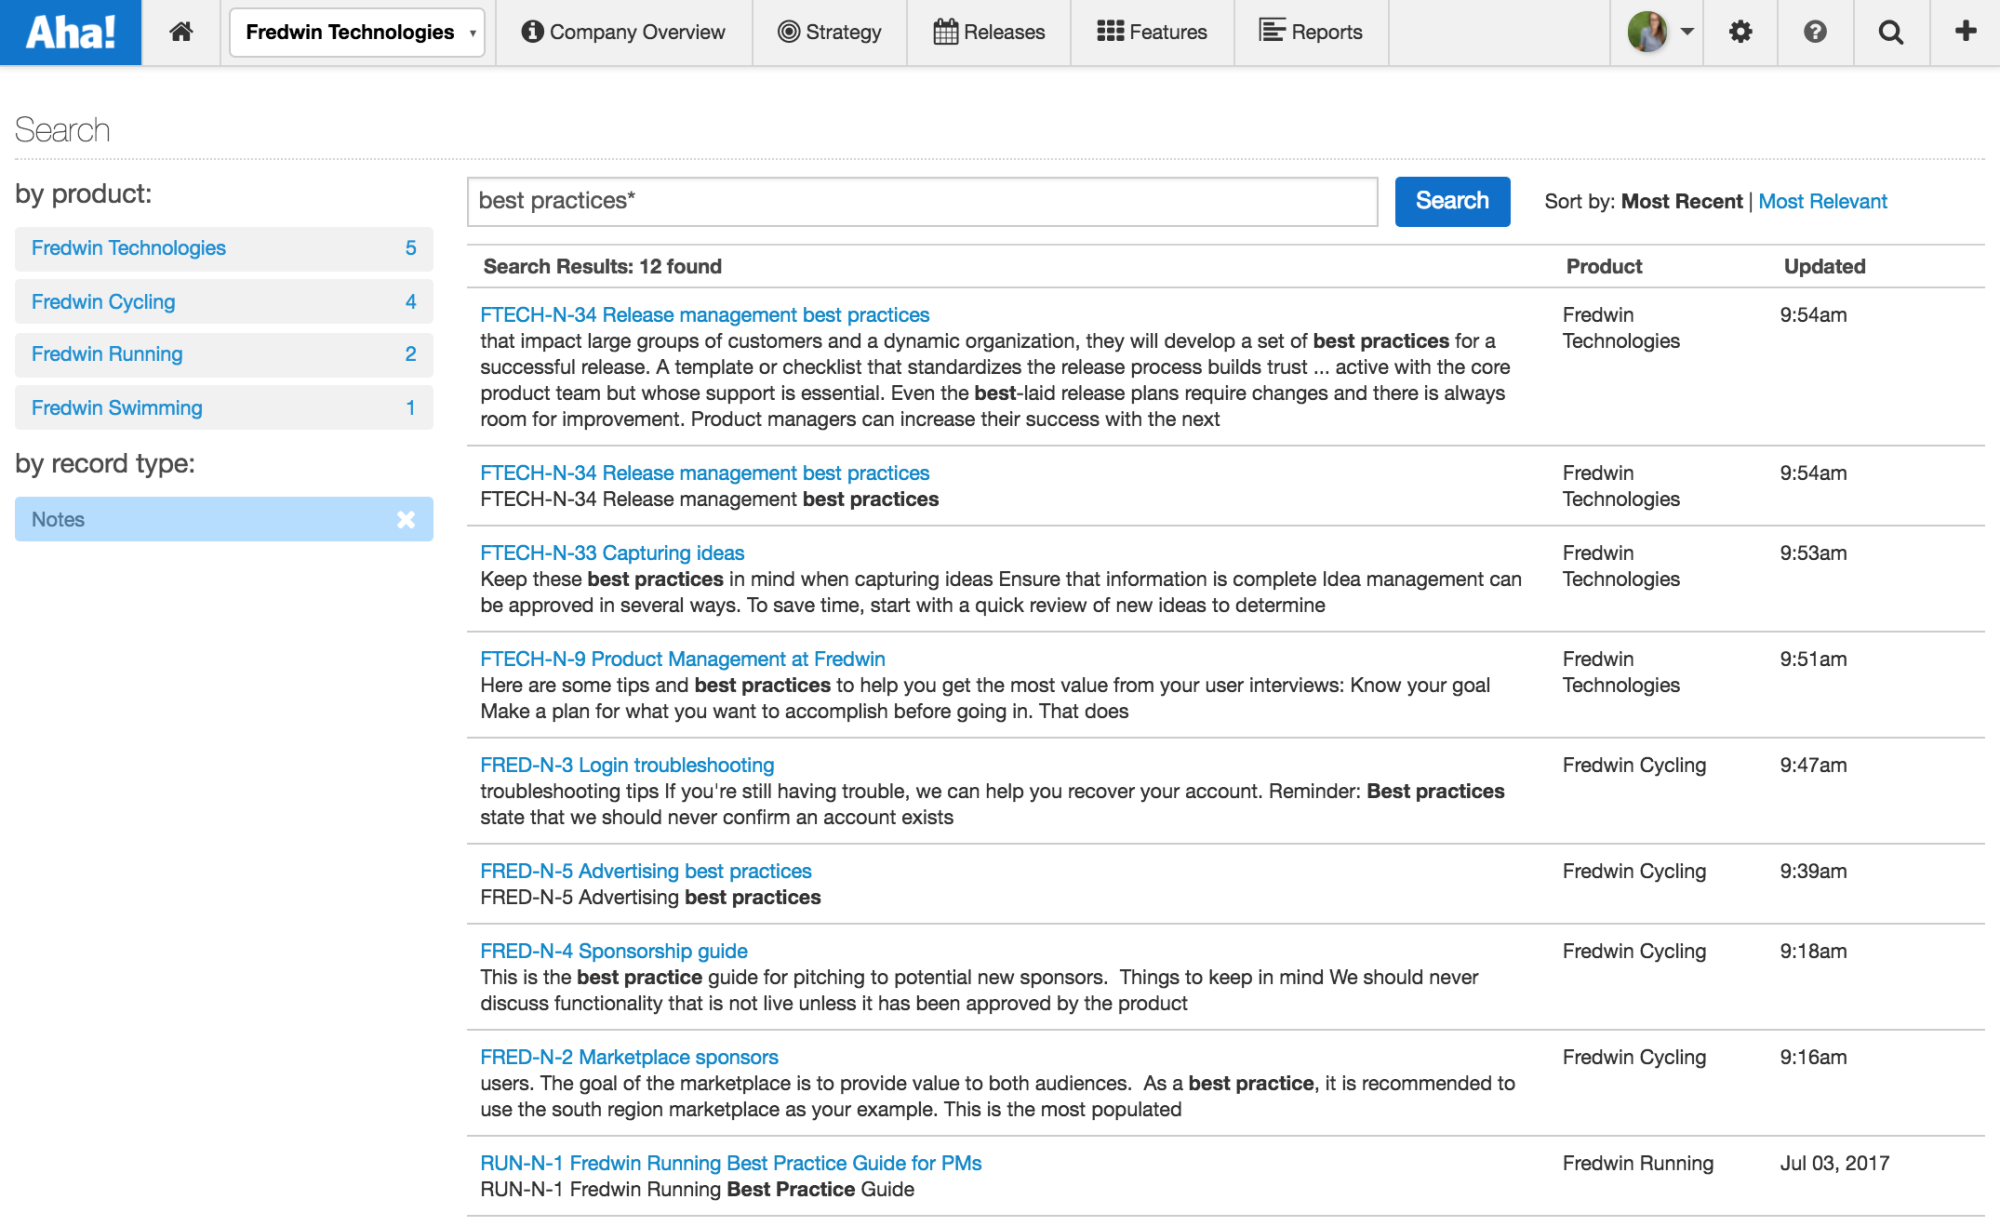 Blog - Just Launched! — The Search Engine for Product Managers - inline image